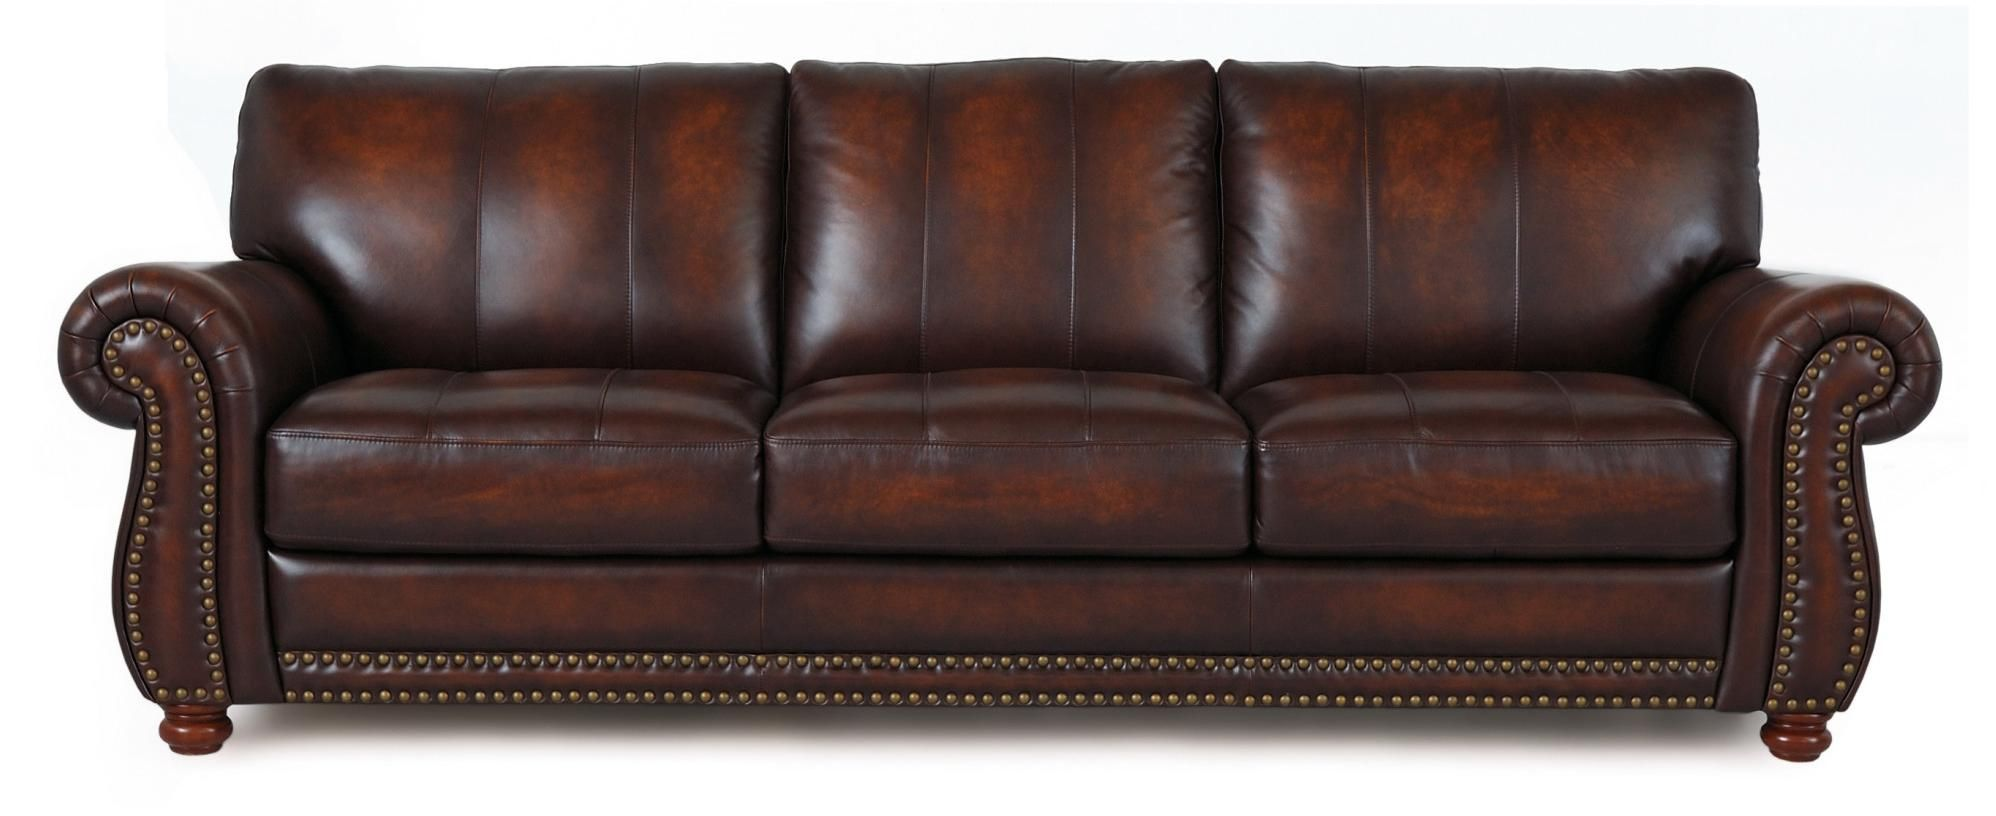 Surprising What Are The Differences Between A Bonded Leather Sofa To A Caraccident5 Cool Chair Designs And Ideas Caraccident5Info